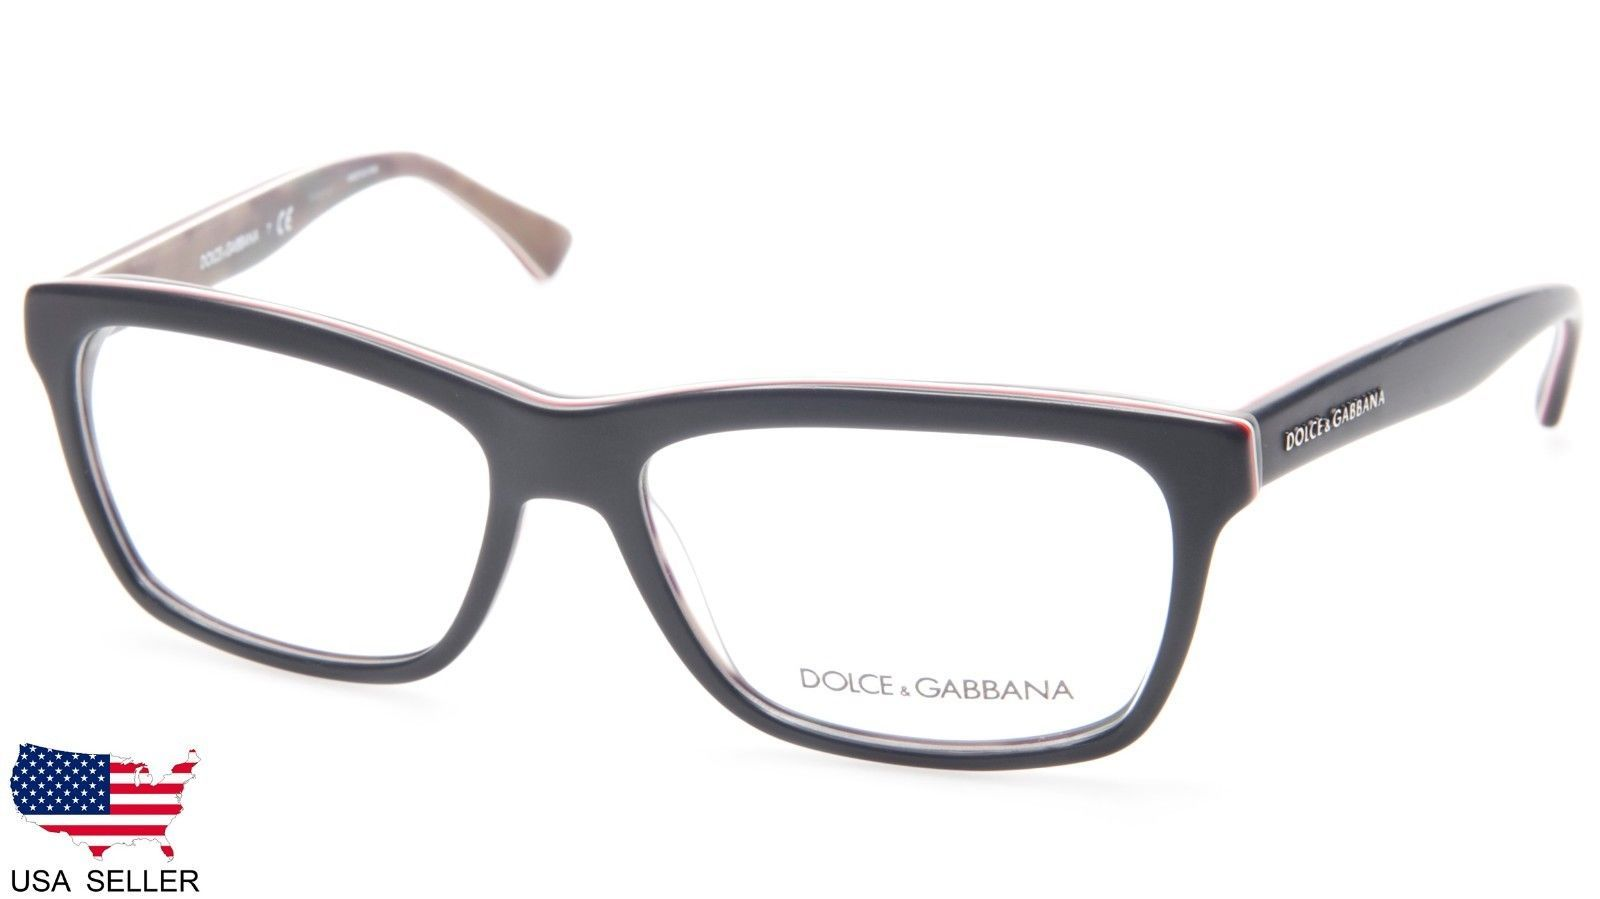 cf4aae816fa8 New D&G Dolce & Gabbana Dg 3235 2954 BLUE/ and 50 similar items